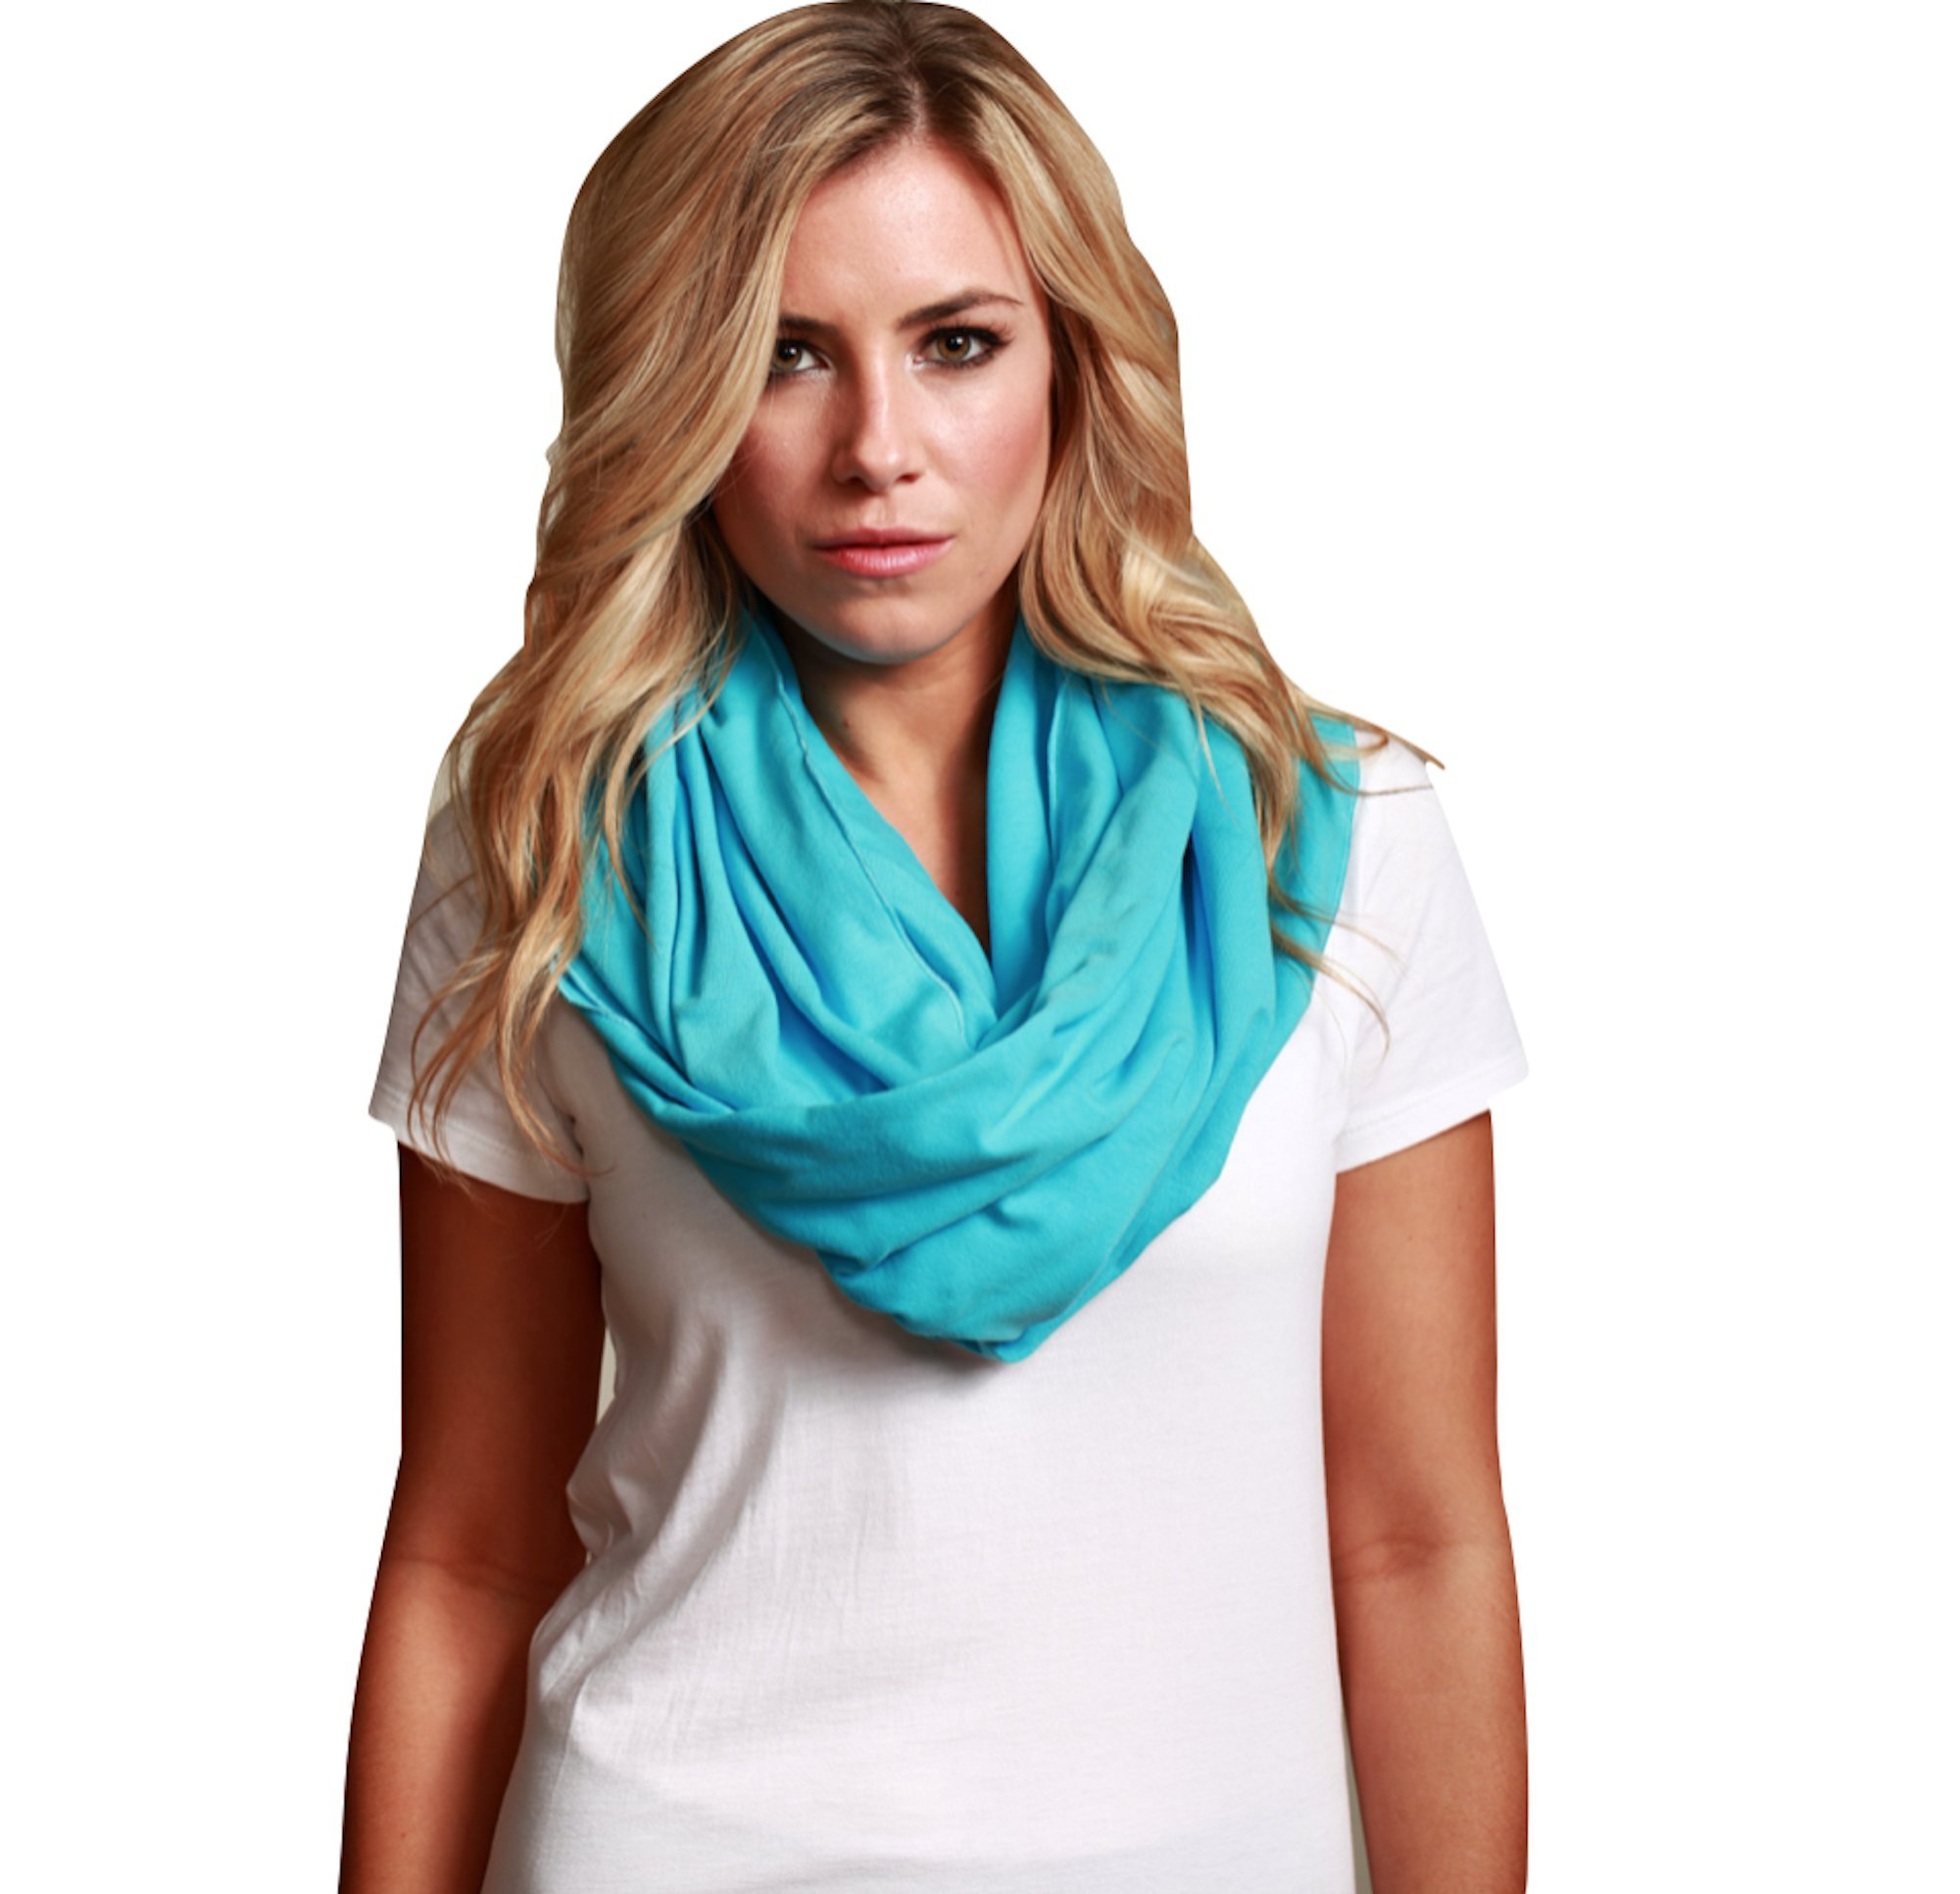 Sleeper Scarf 2-in-1 Travel Scarf and Inflatable Neck Pillow (Turquoise, Traditional Inflate)